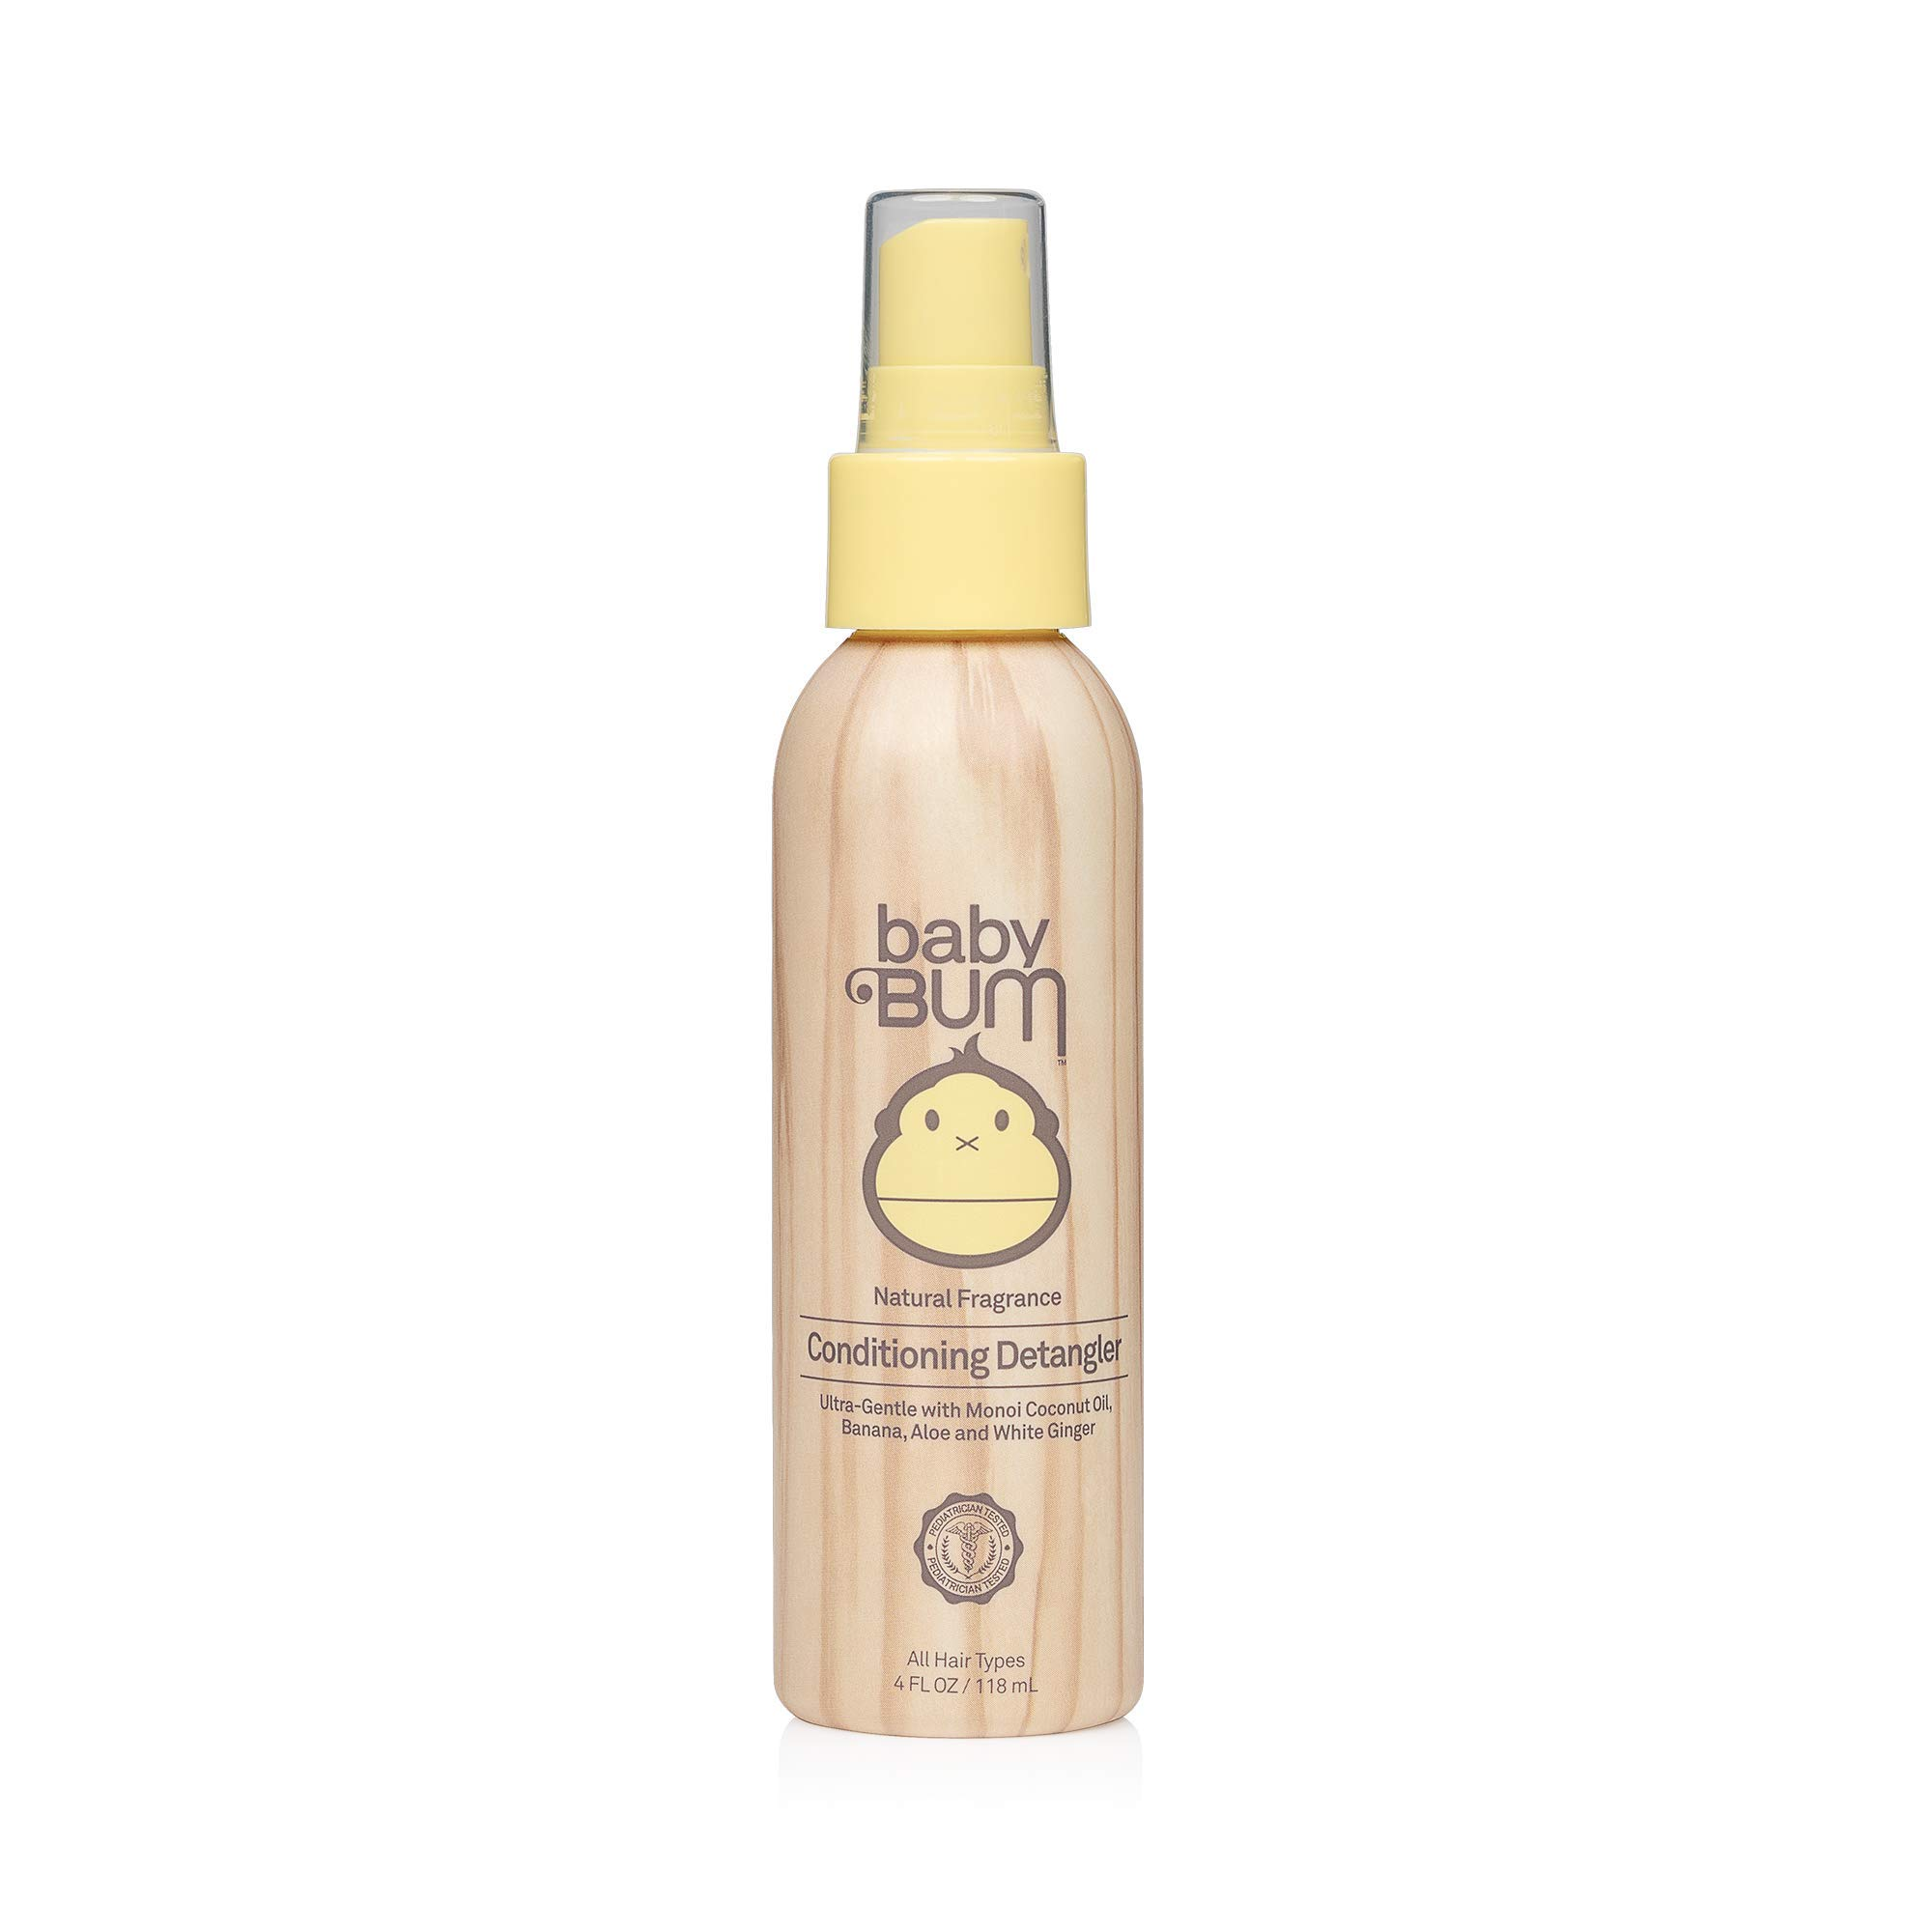 Baby Bum Conditioning Detangler Leave